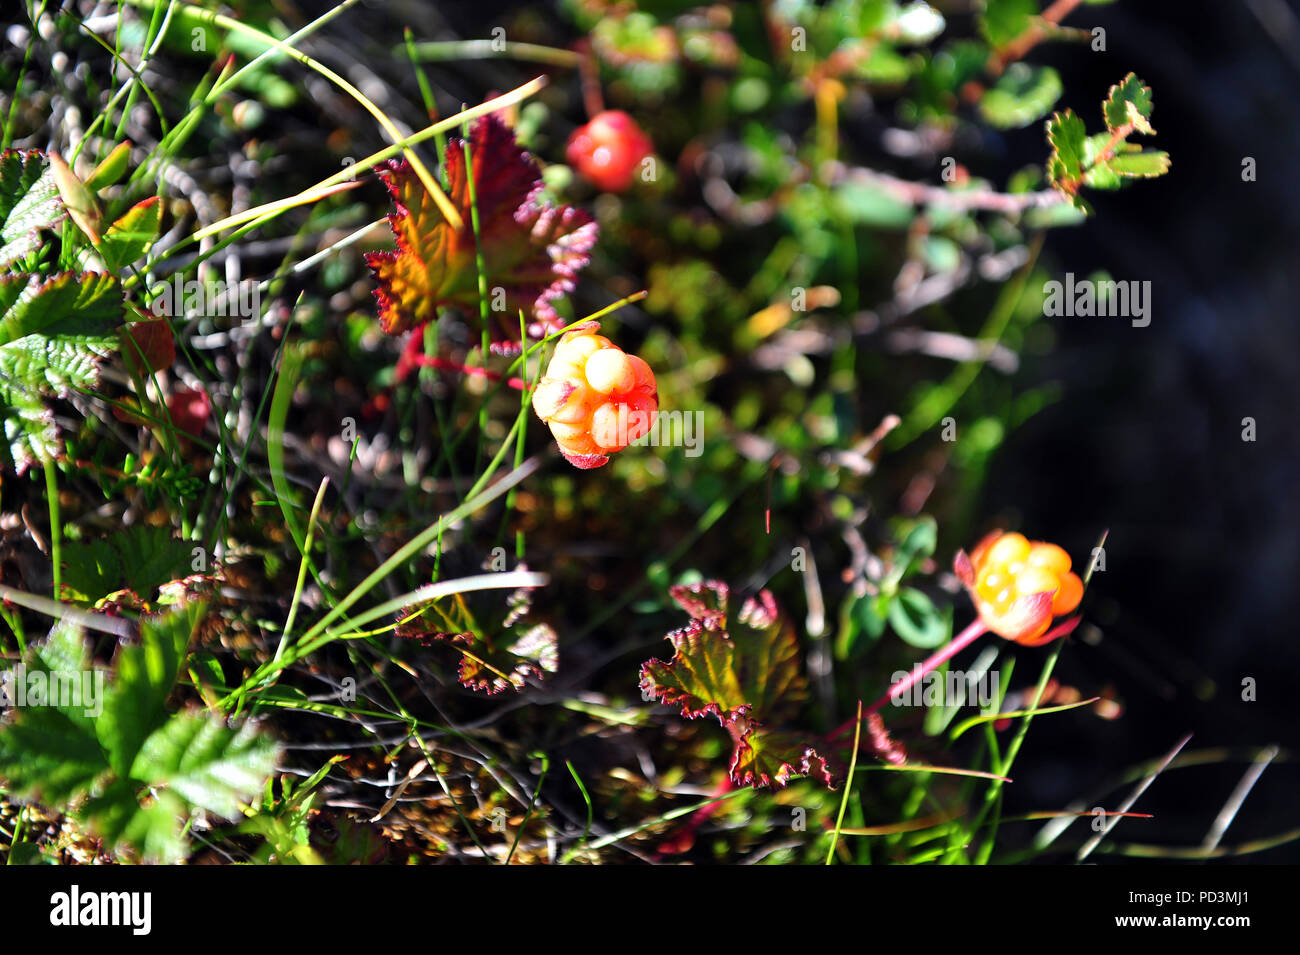 A couple of cloudberries in natural surroundings. Horizontal photo. - Stock Image